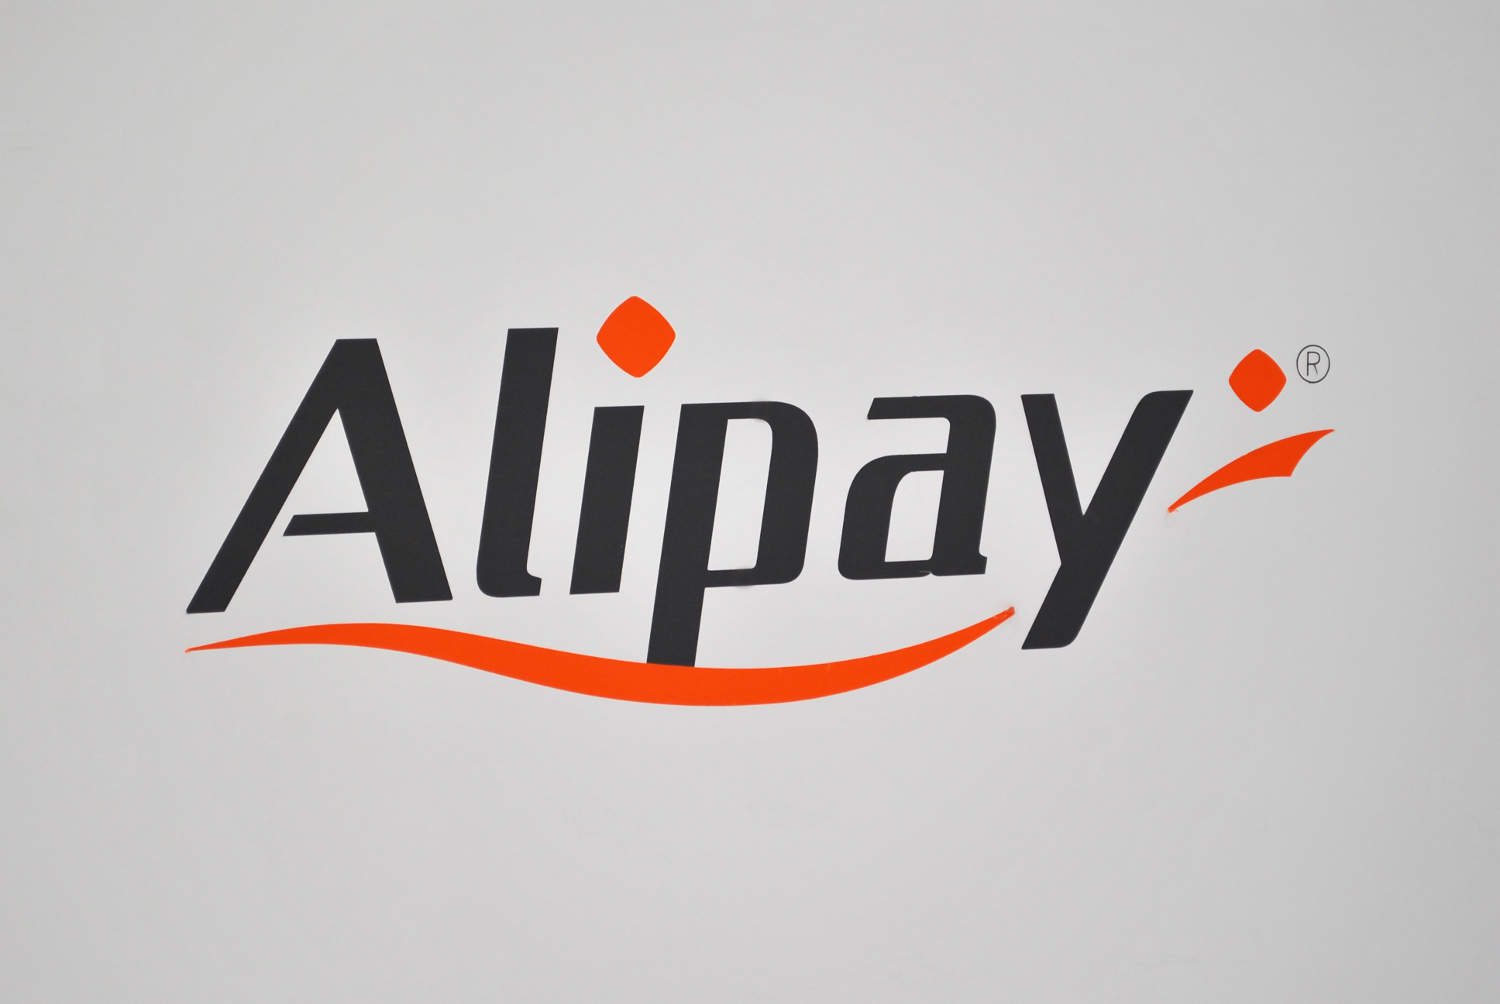 Can Alipay reach 2bn customers within 10 years?